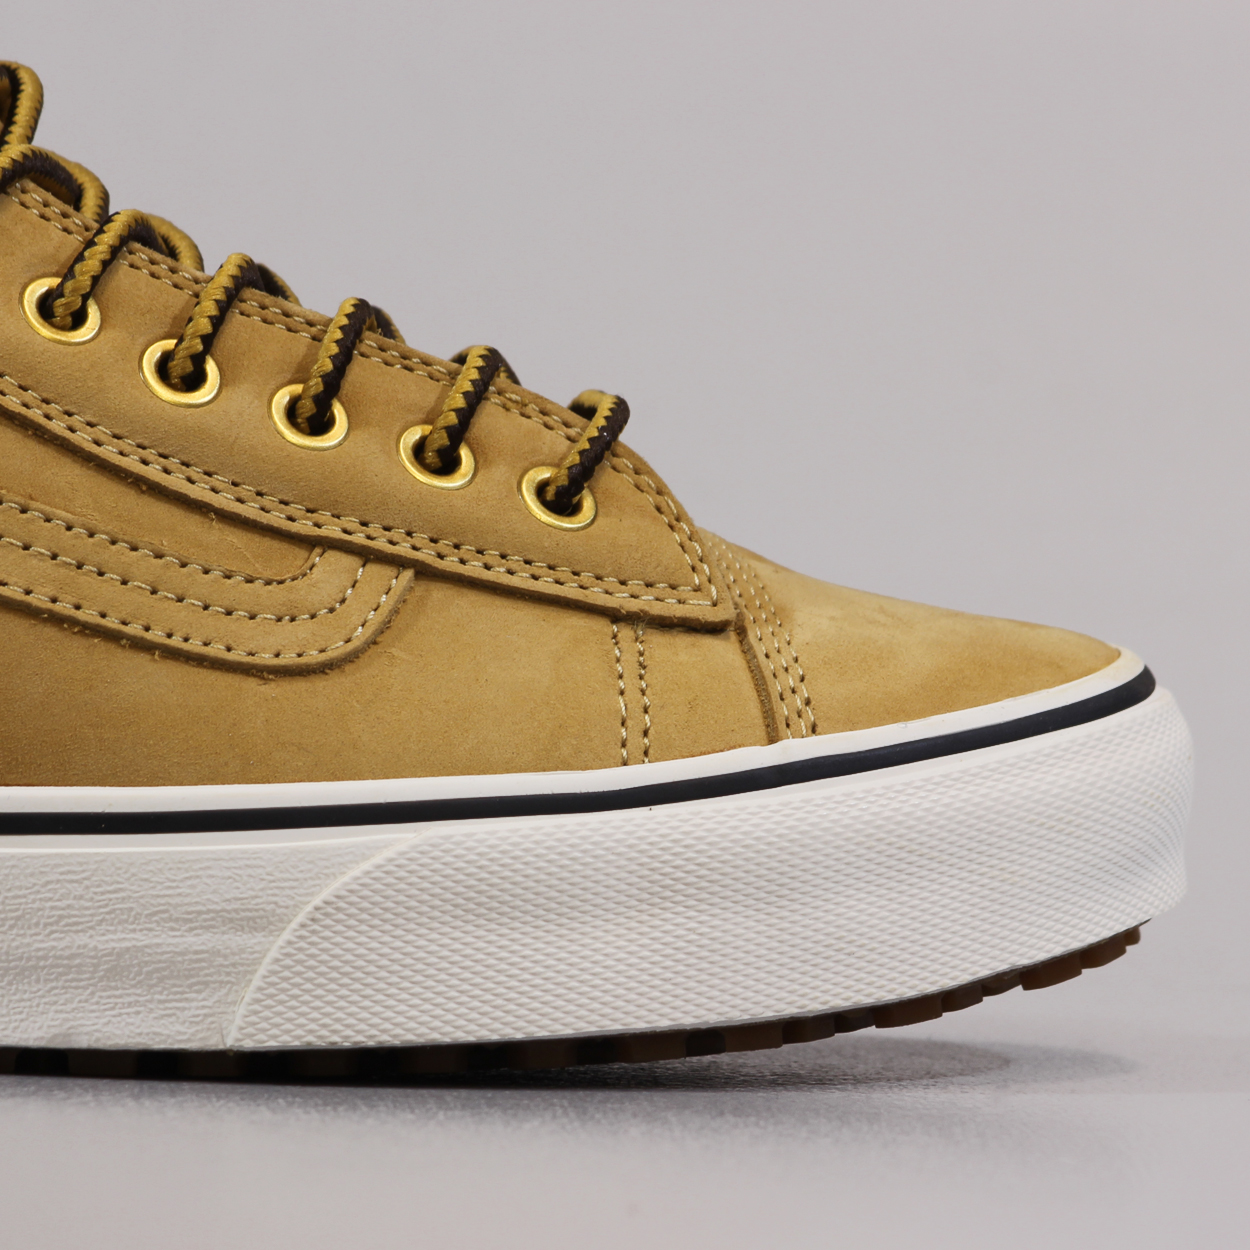 afdad1c226 Old skool is back from the Vans California Collection with these arrowwood leather  mid-tops.